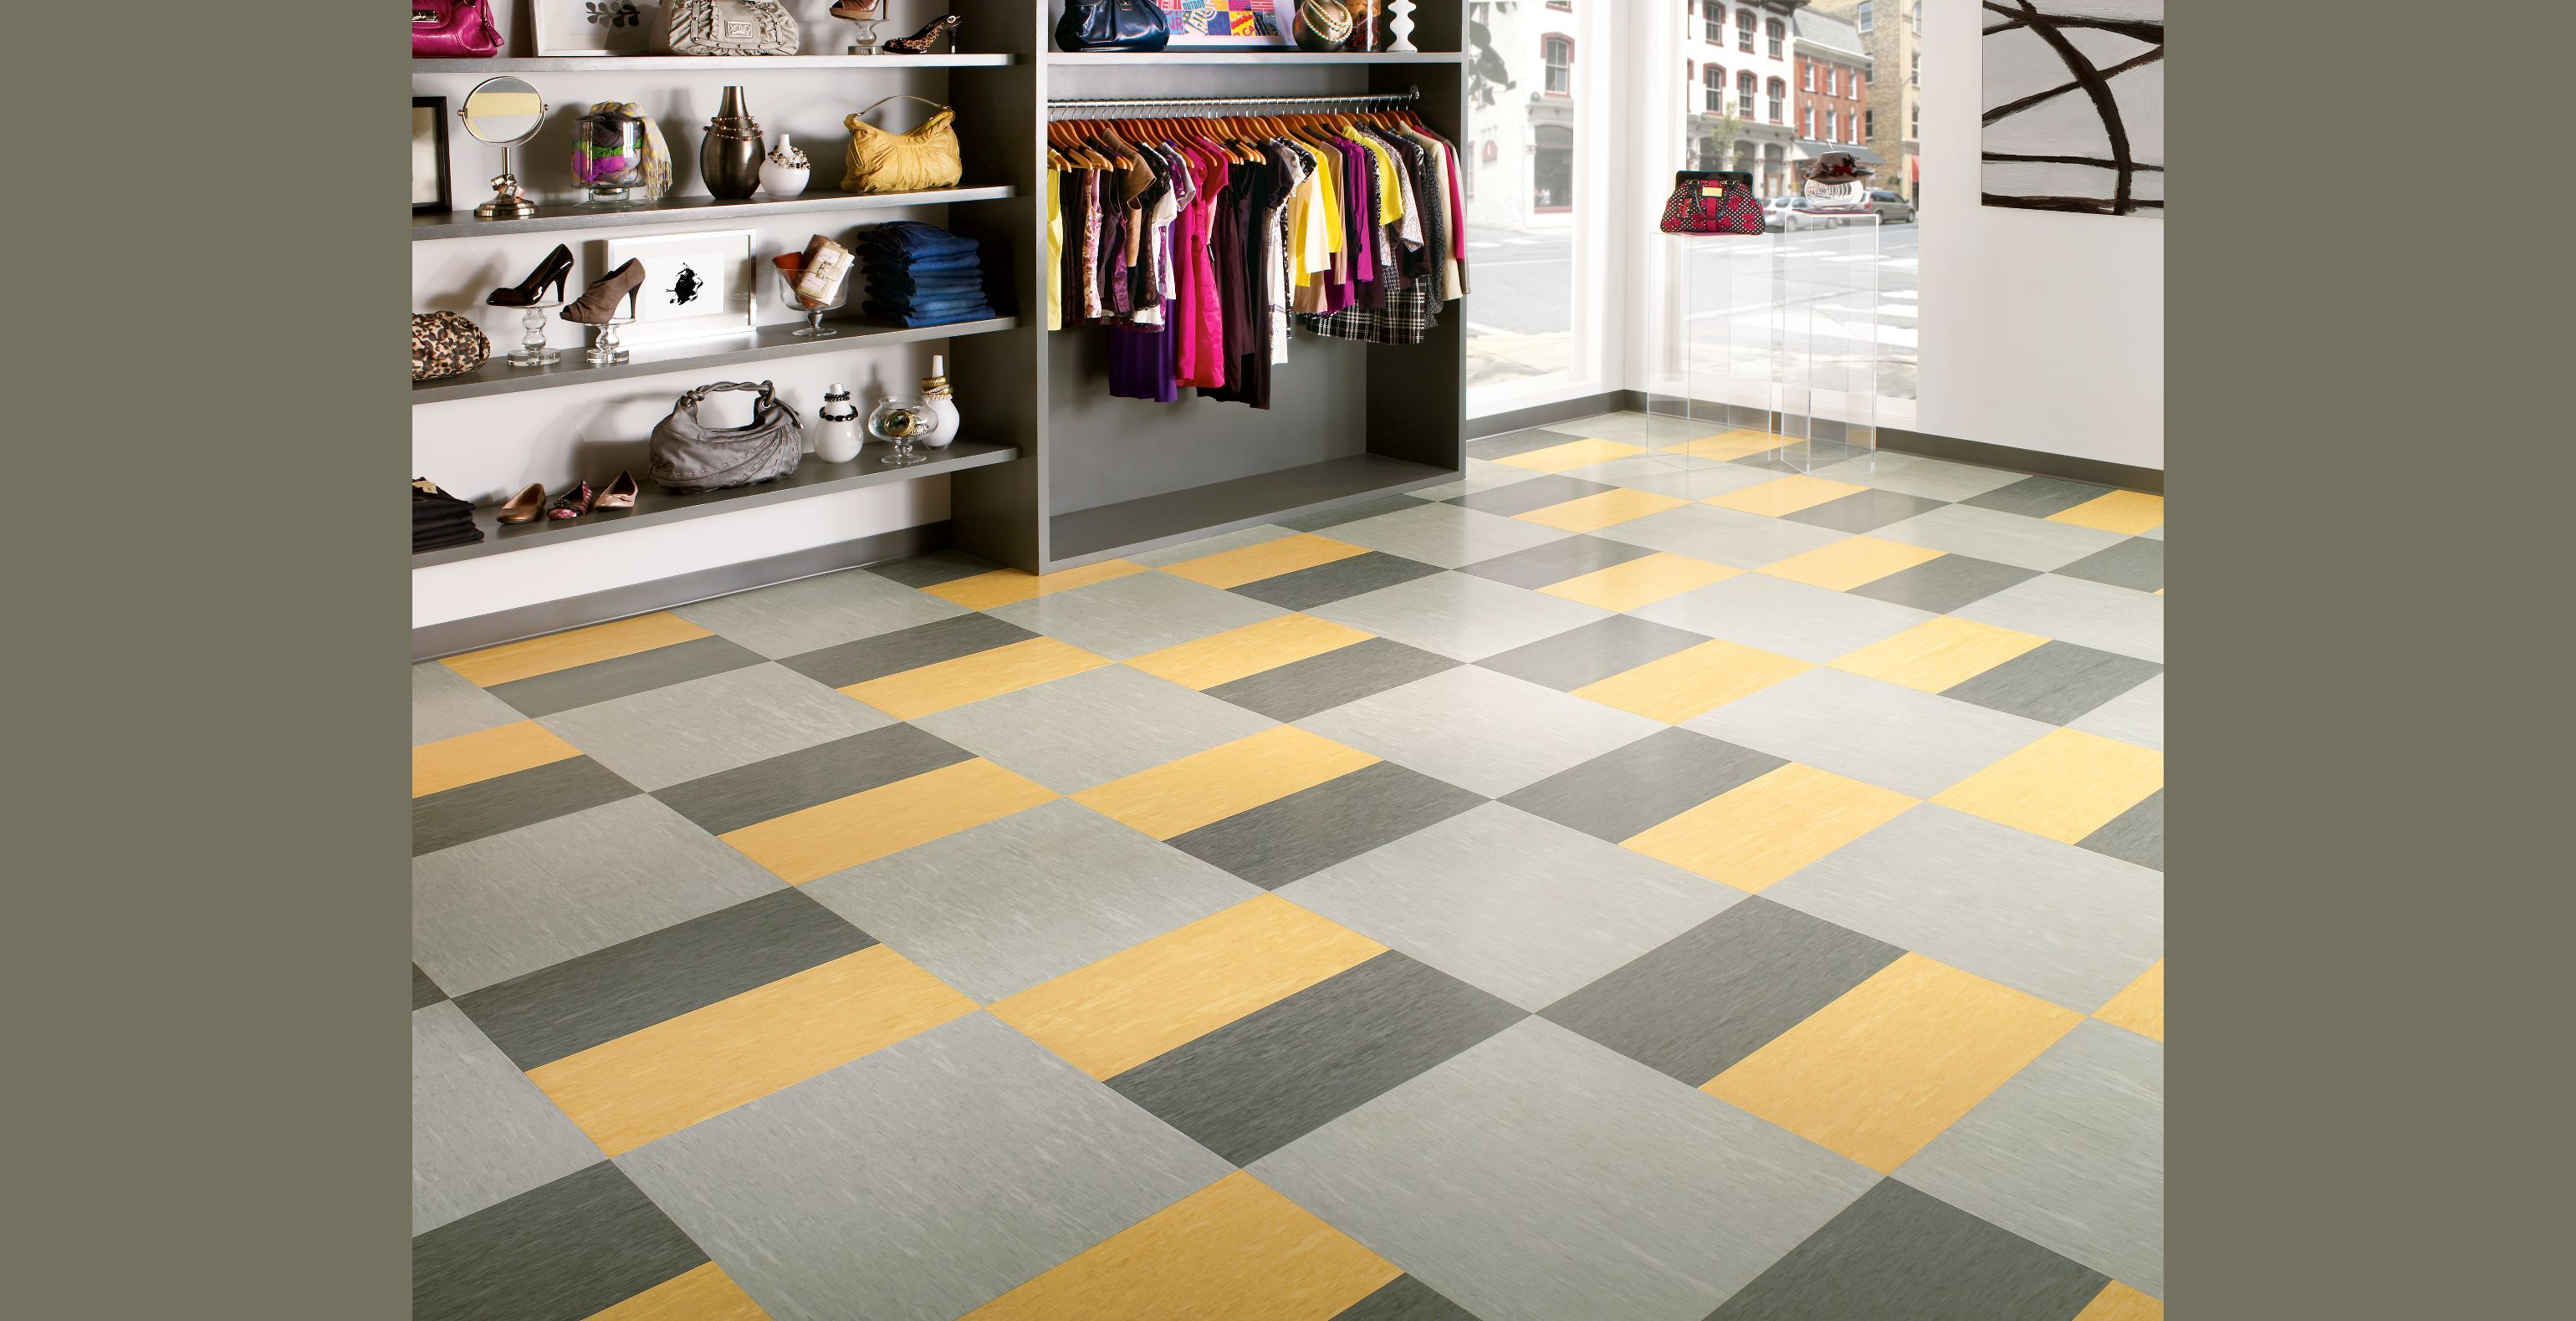 Vinyl flooring patterns modern house 1000 images about floor on pinterest dailygadgetfo Image collections